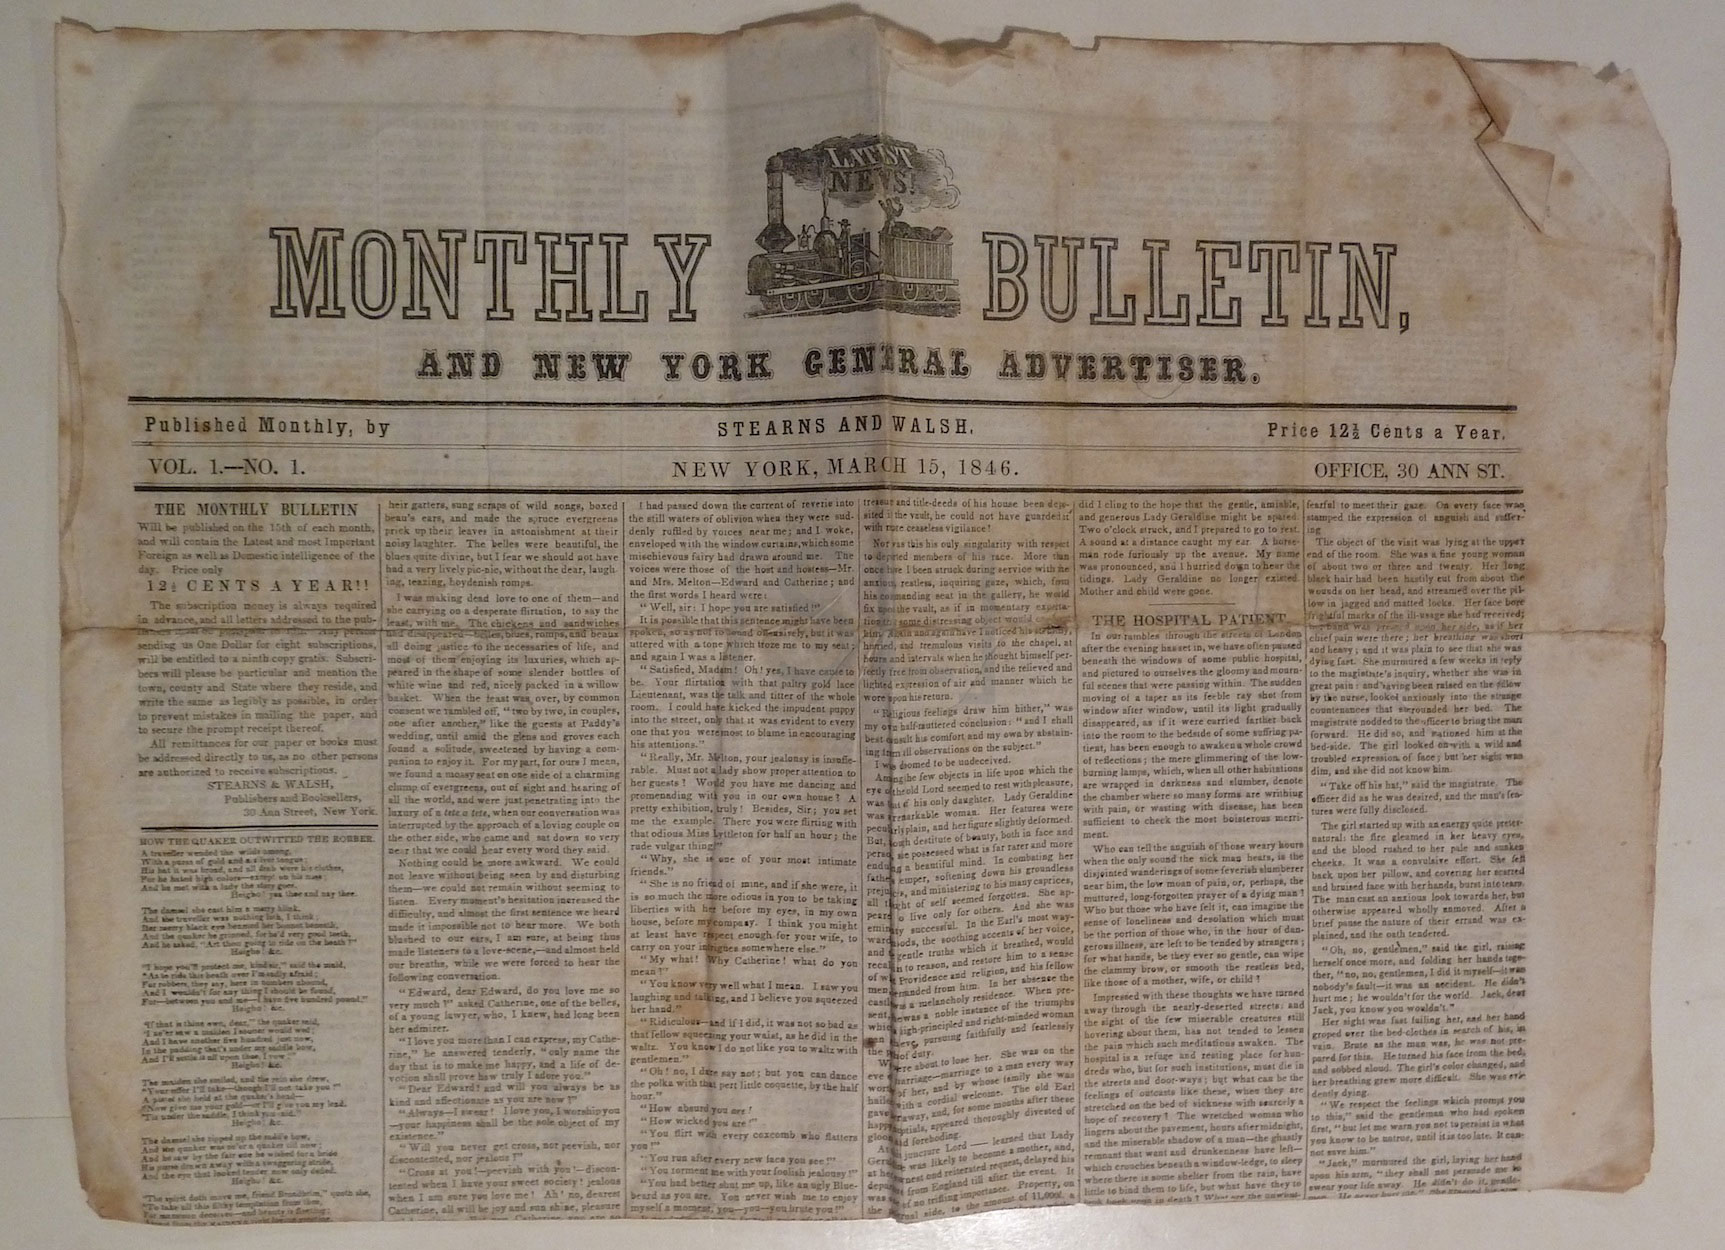 Monthly Bulletin and New York General Advertiser